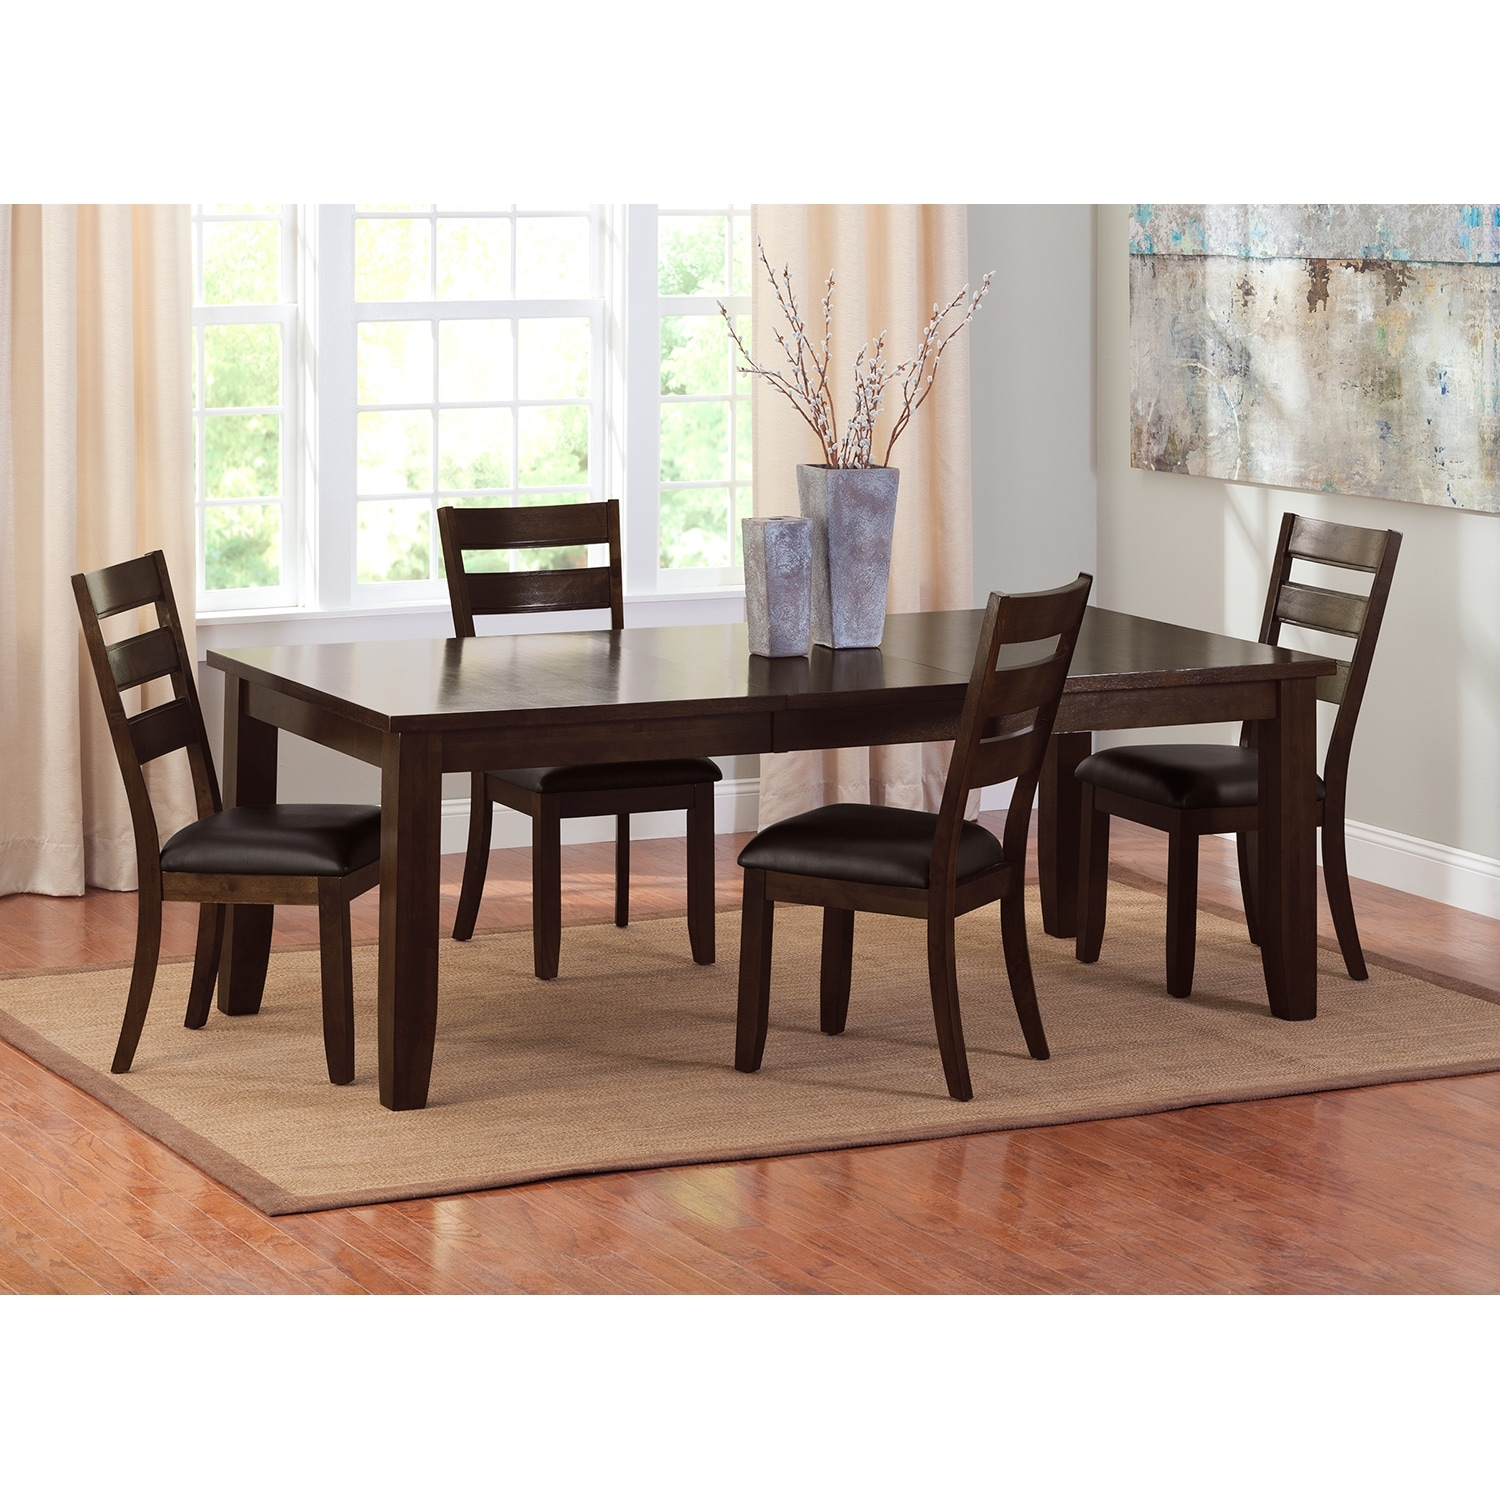 Value City Dining Room Tables Abaco Dining Table Brown Value City Furniture